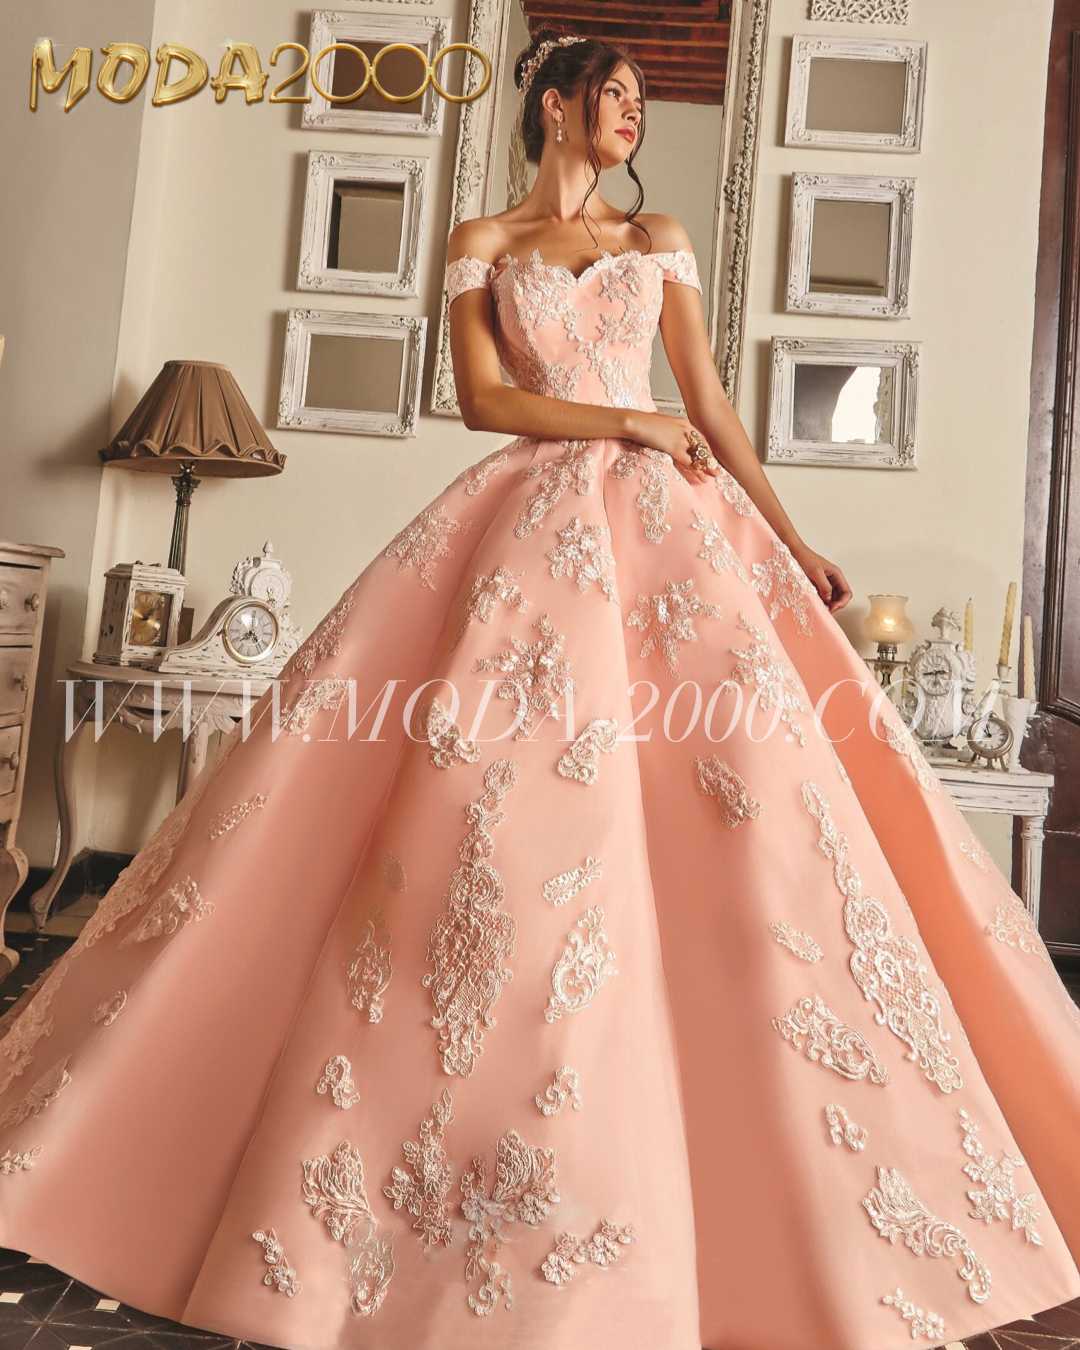 faa711c31fa Off the shoulder jeweled lace pink quinceanera dress available at Moda  2000✨ Instagram   moda2000inc